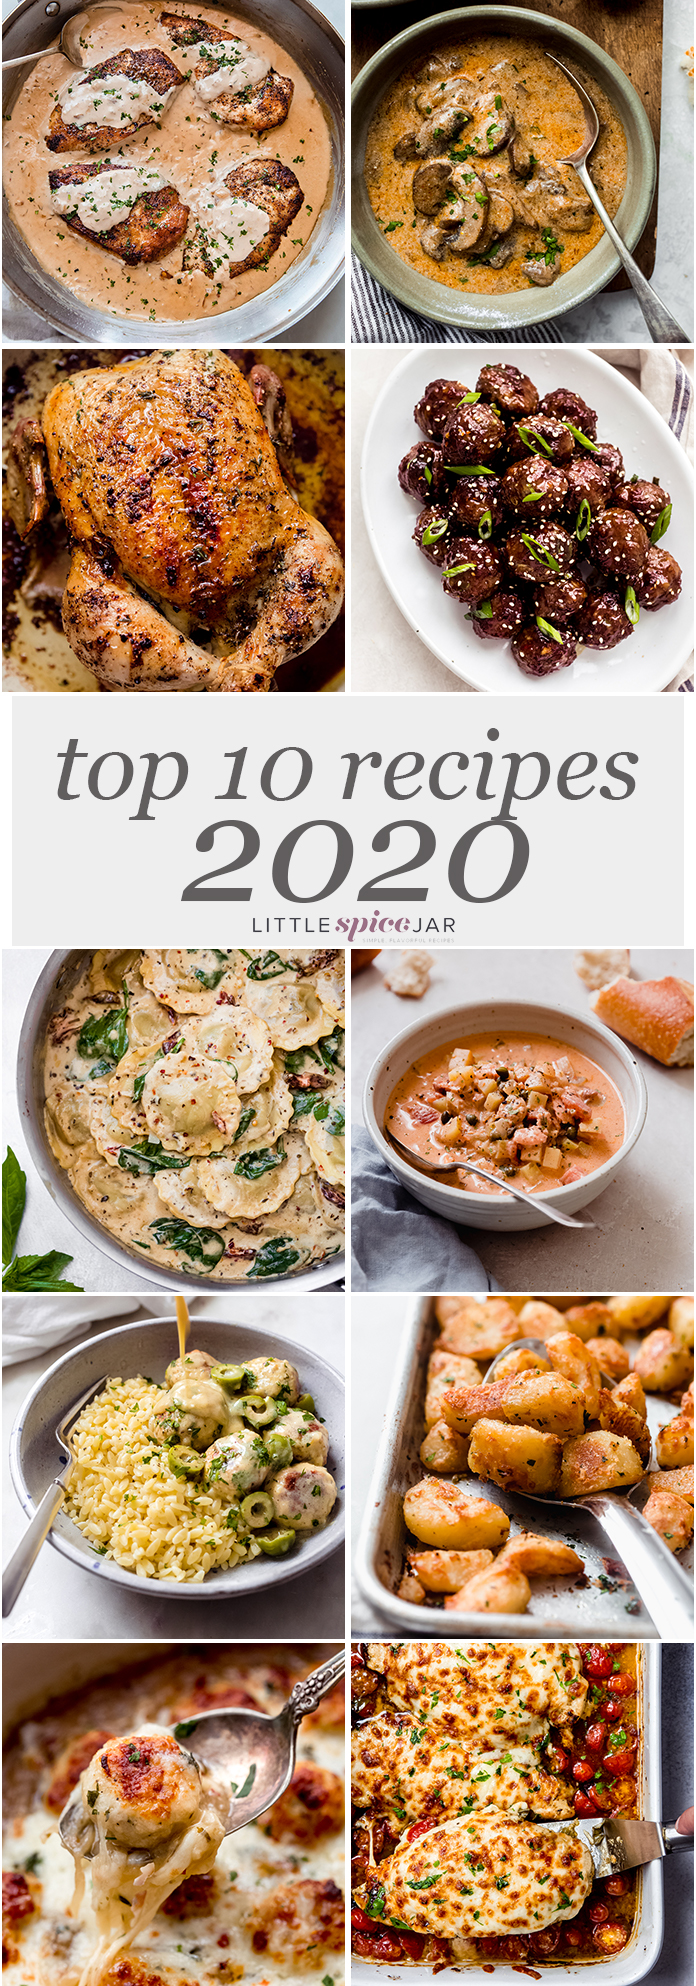 top 10 recipes of 2020 in one pinterest image